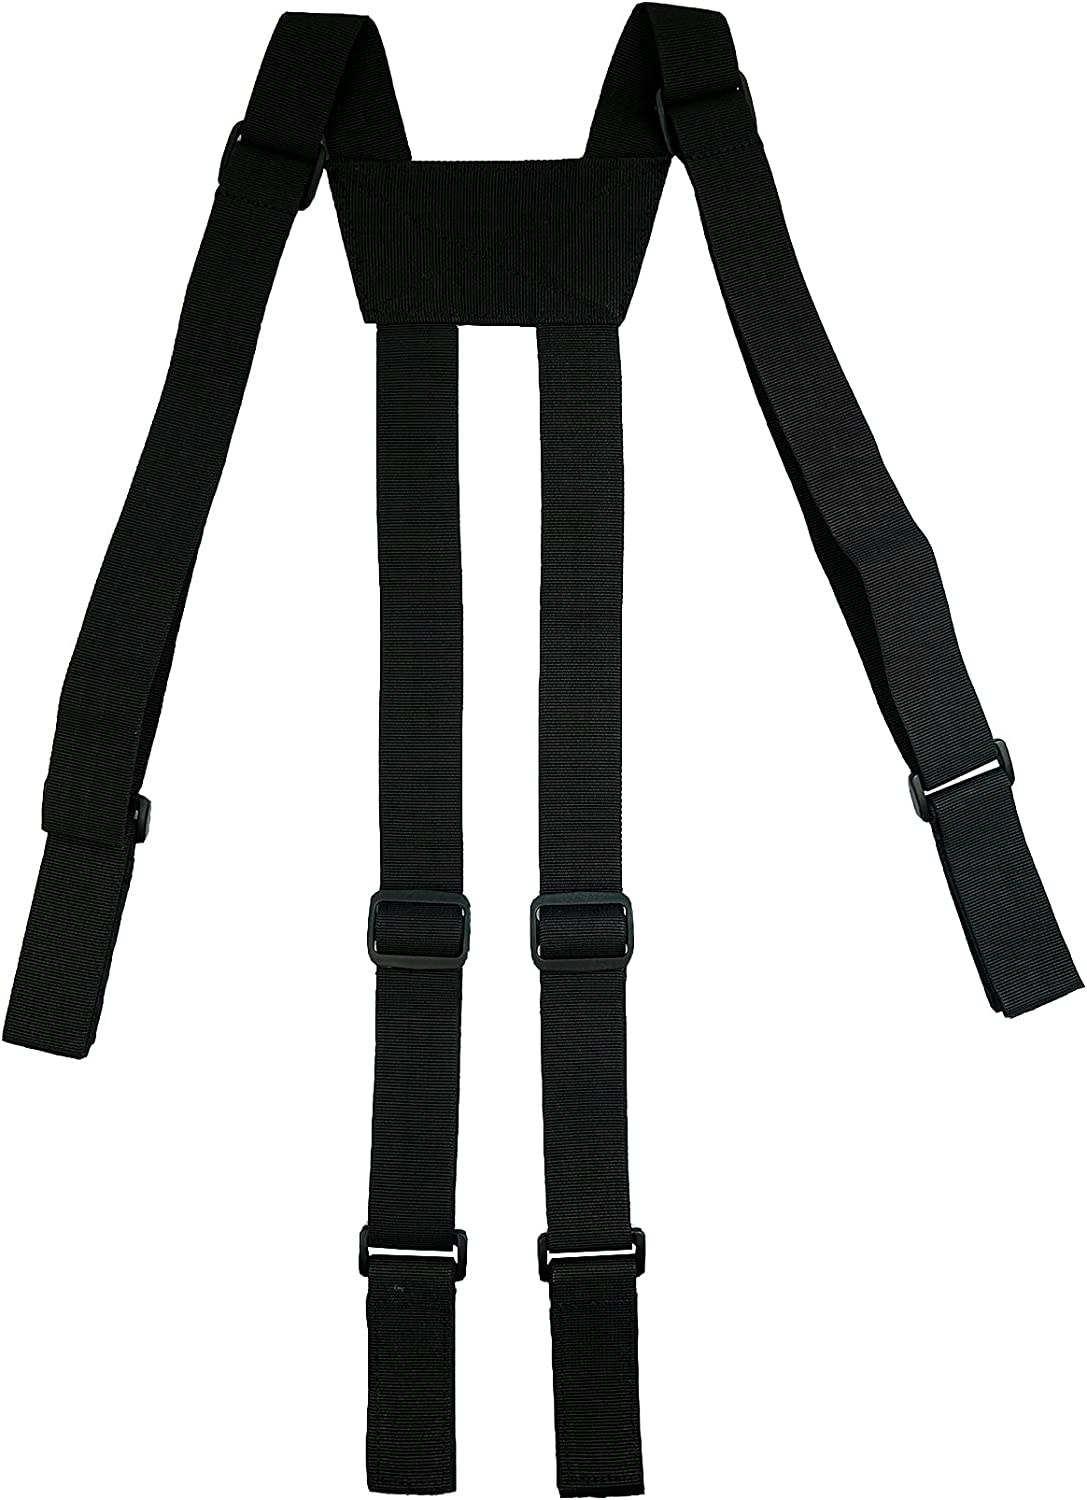 MELOTOUGH Tactical Suspenders Police Suspenders for Duty Belt with Durable Suspender Loop up 2.25 inch